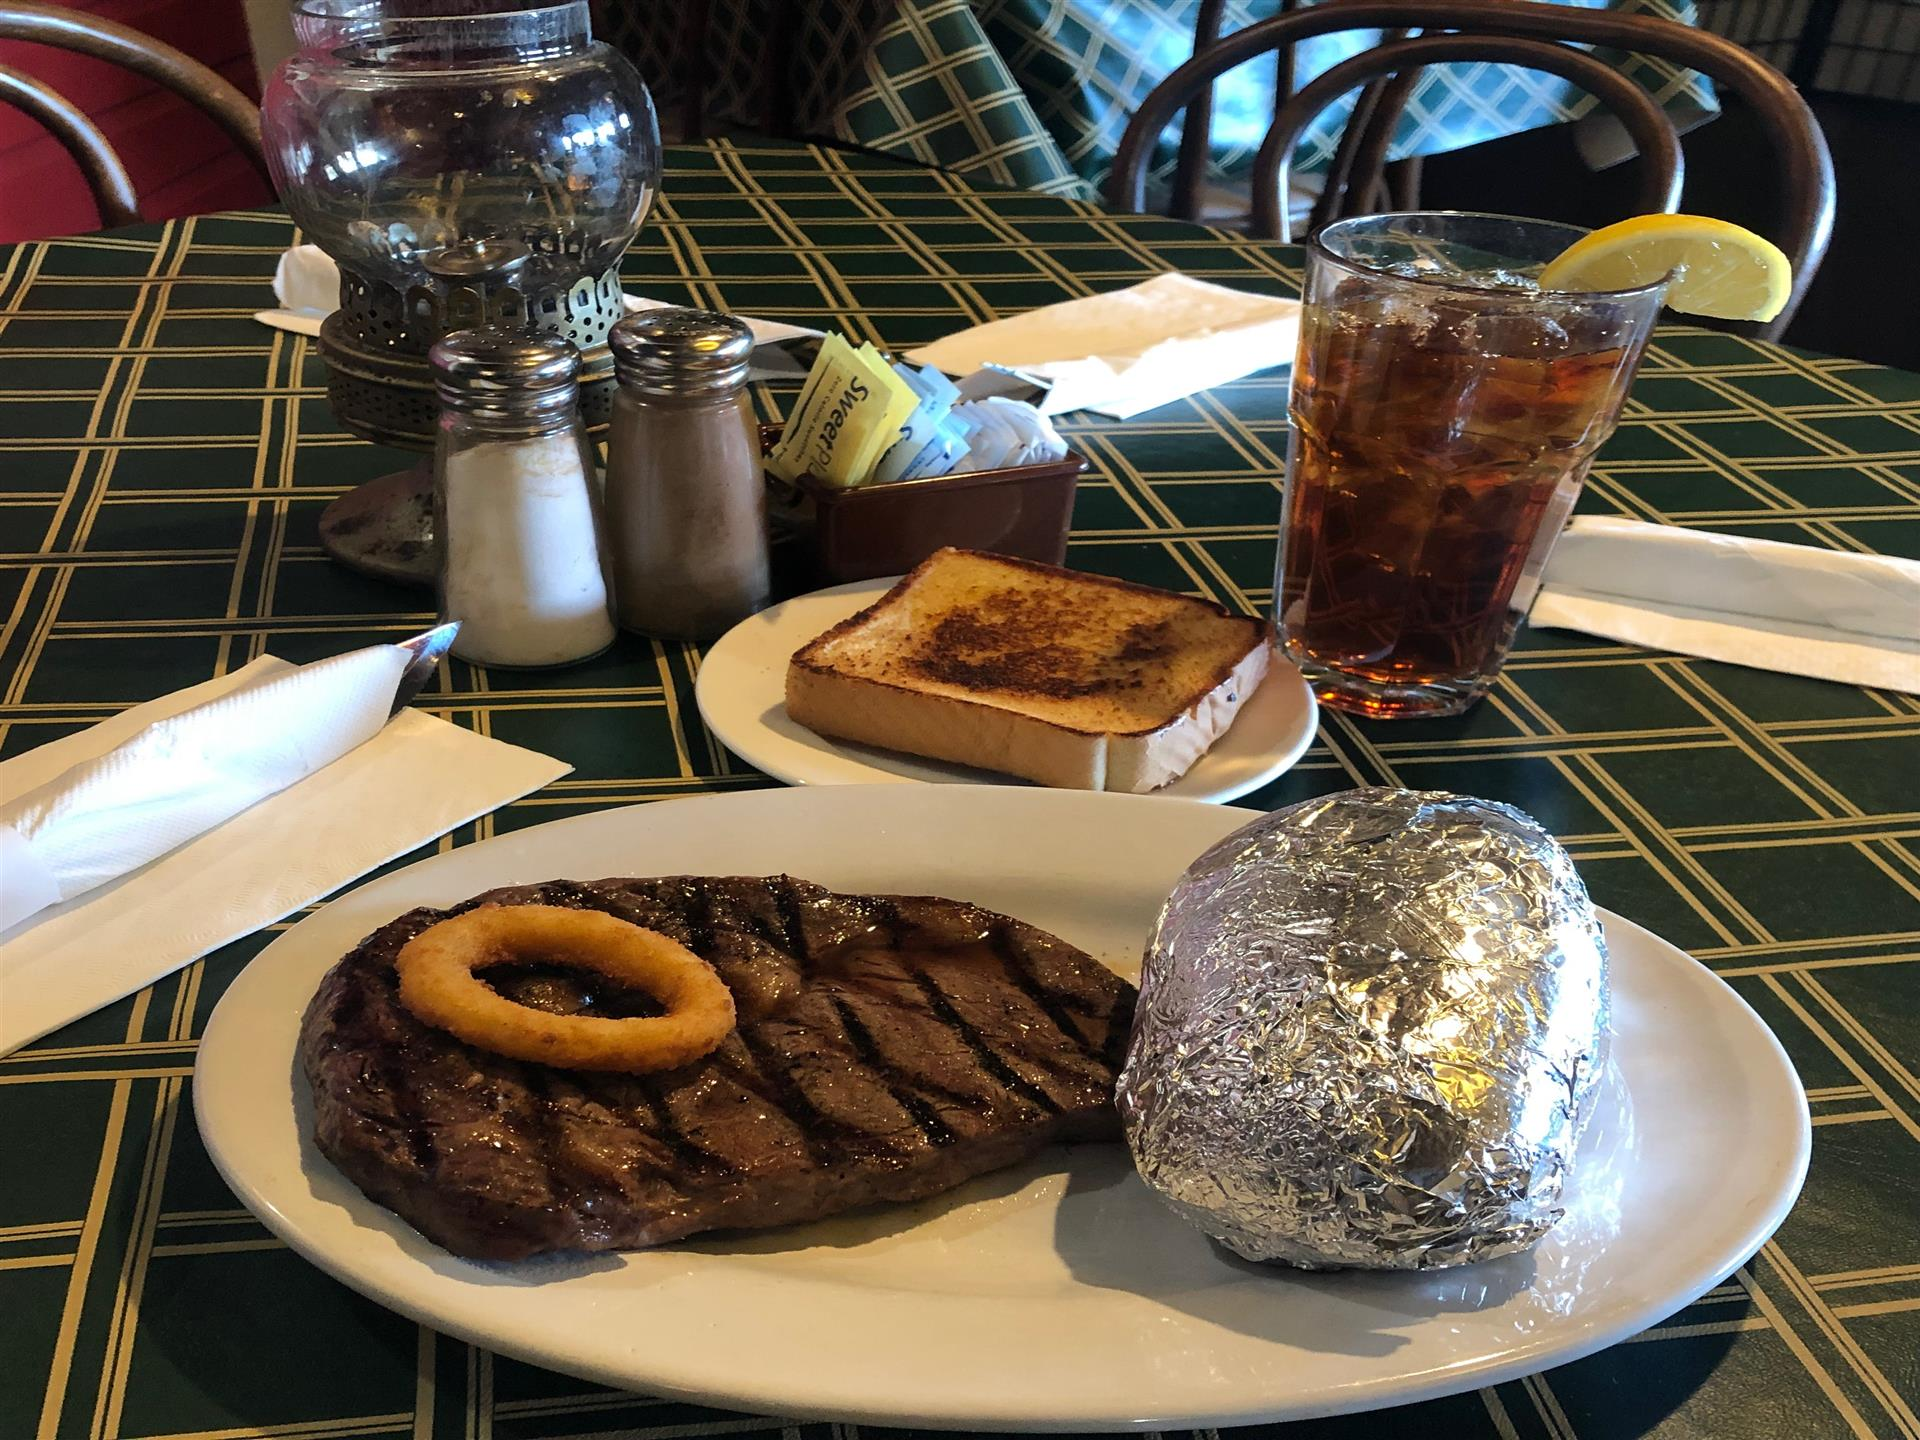 Grilled Steak on a plate with a fried onion ring on top. Baked potato on the side wrapped in foil. Toast and soda behind it.